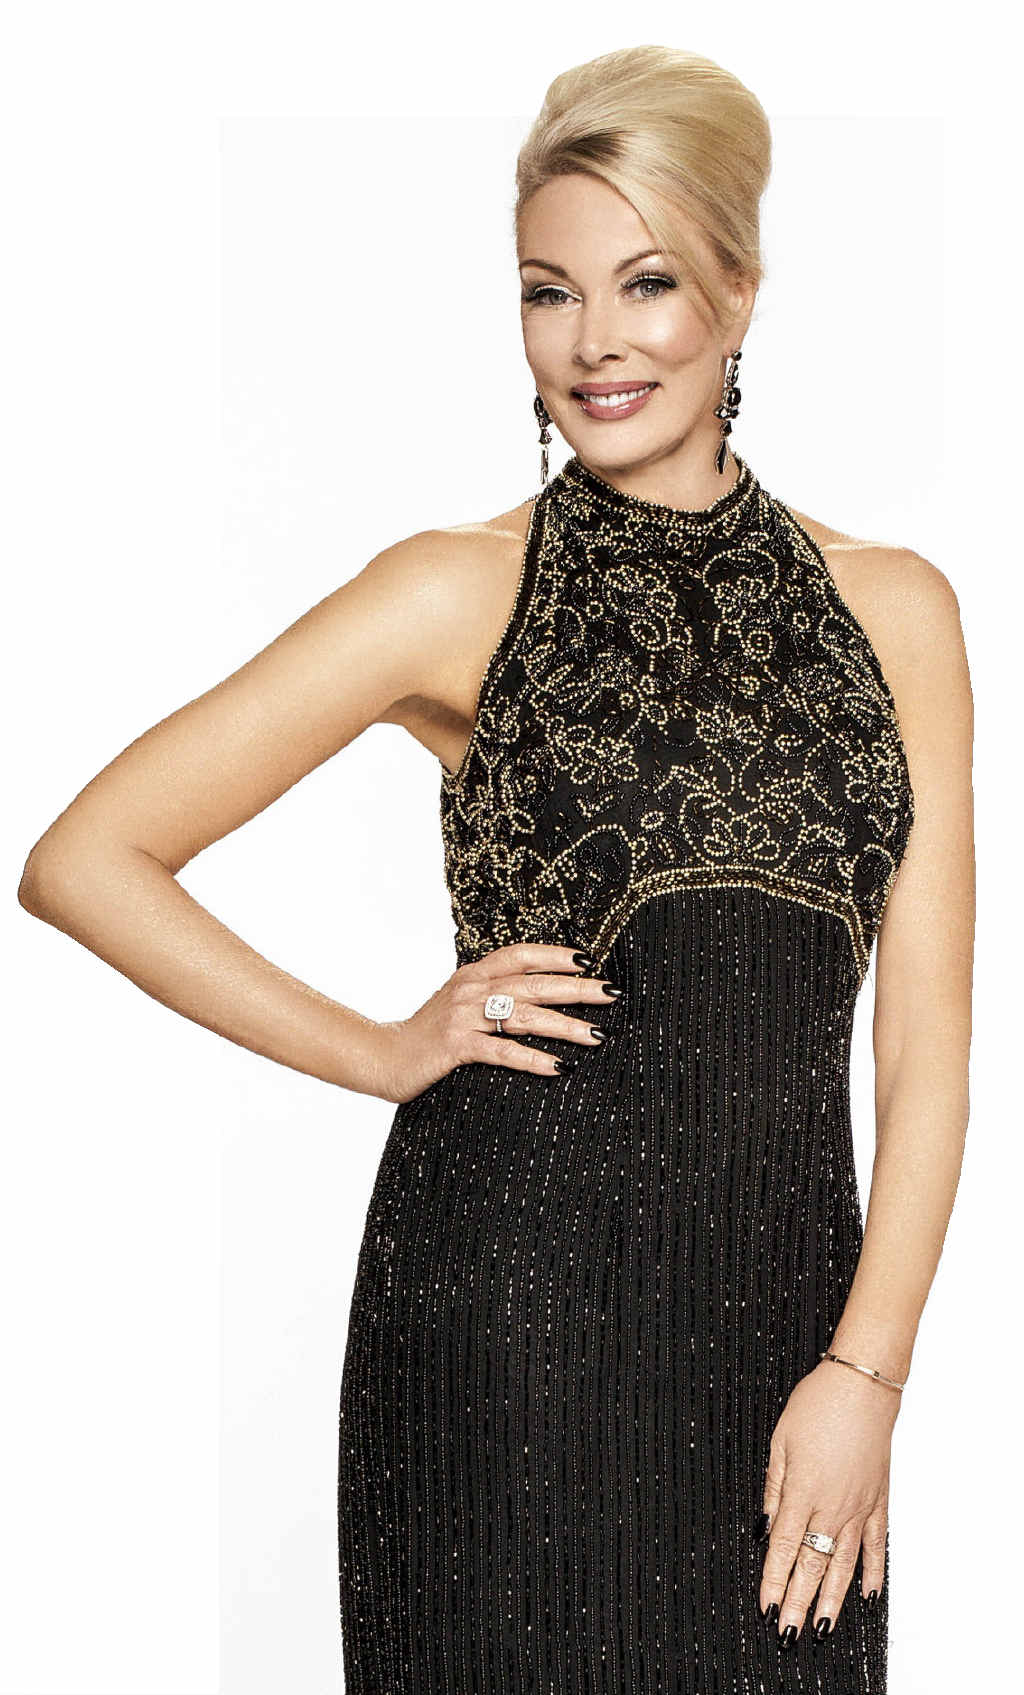 BACK FOR MORE: Melbourne property developer Janet Roach, who was born in Gympie, stars in season two of The Real Housewives of Melbourne.